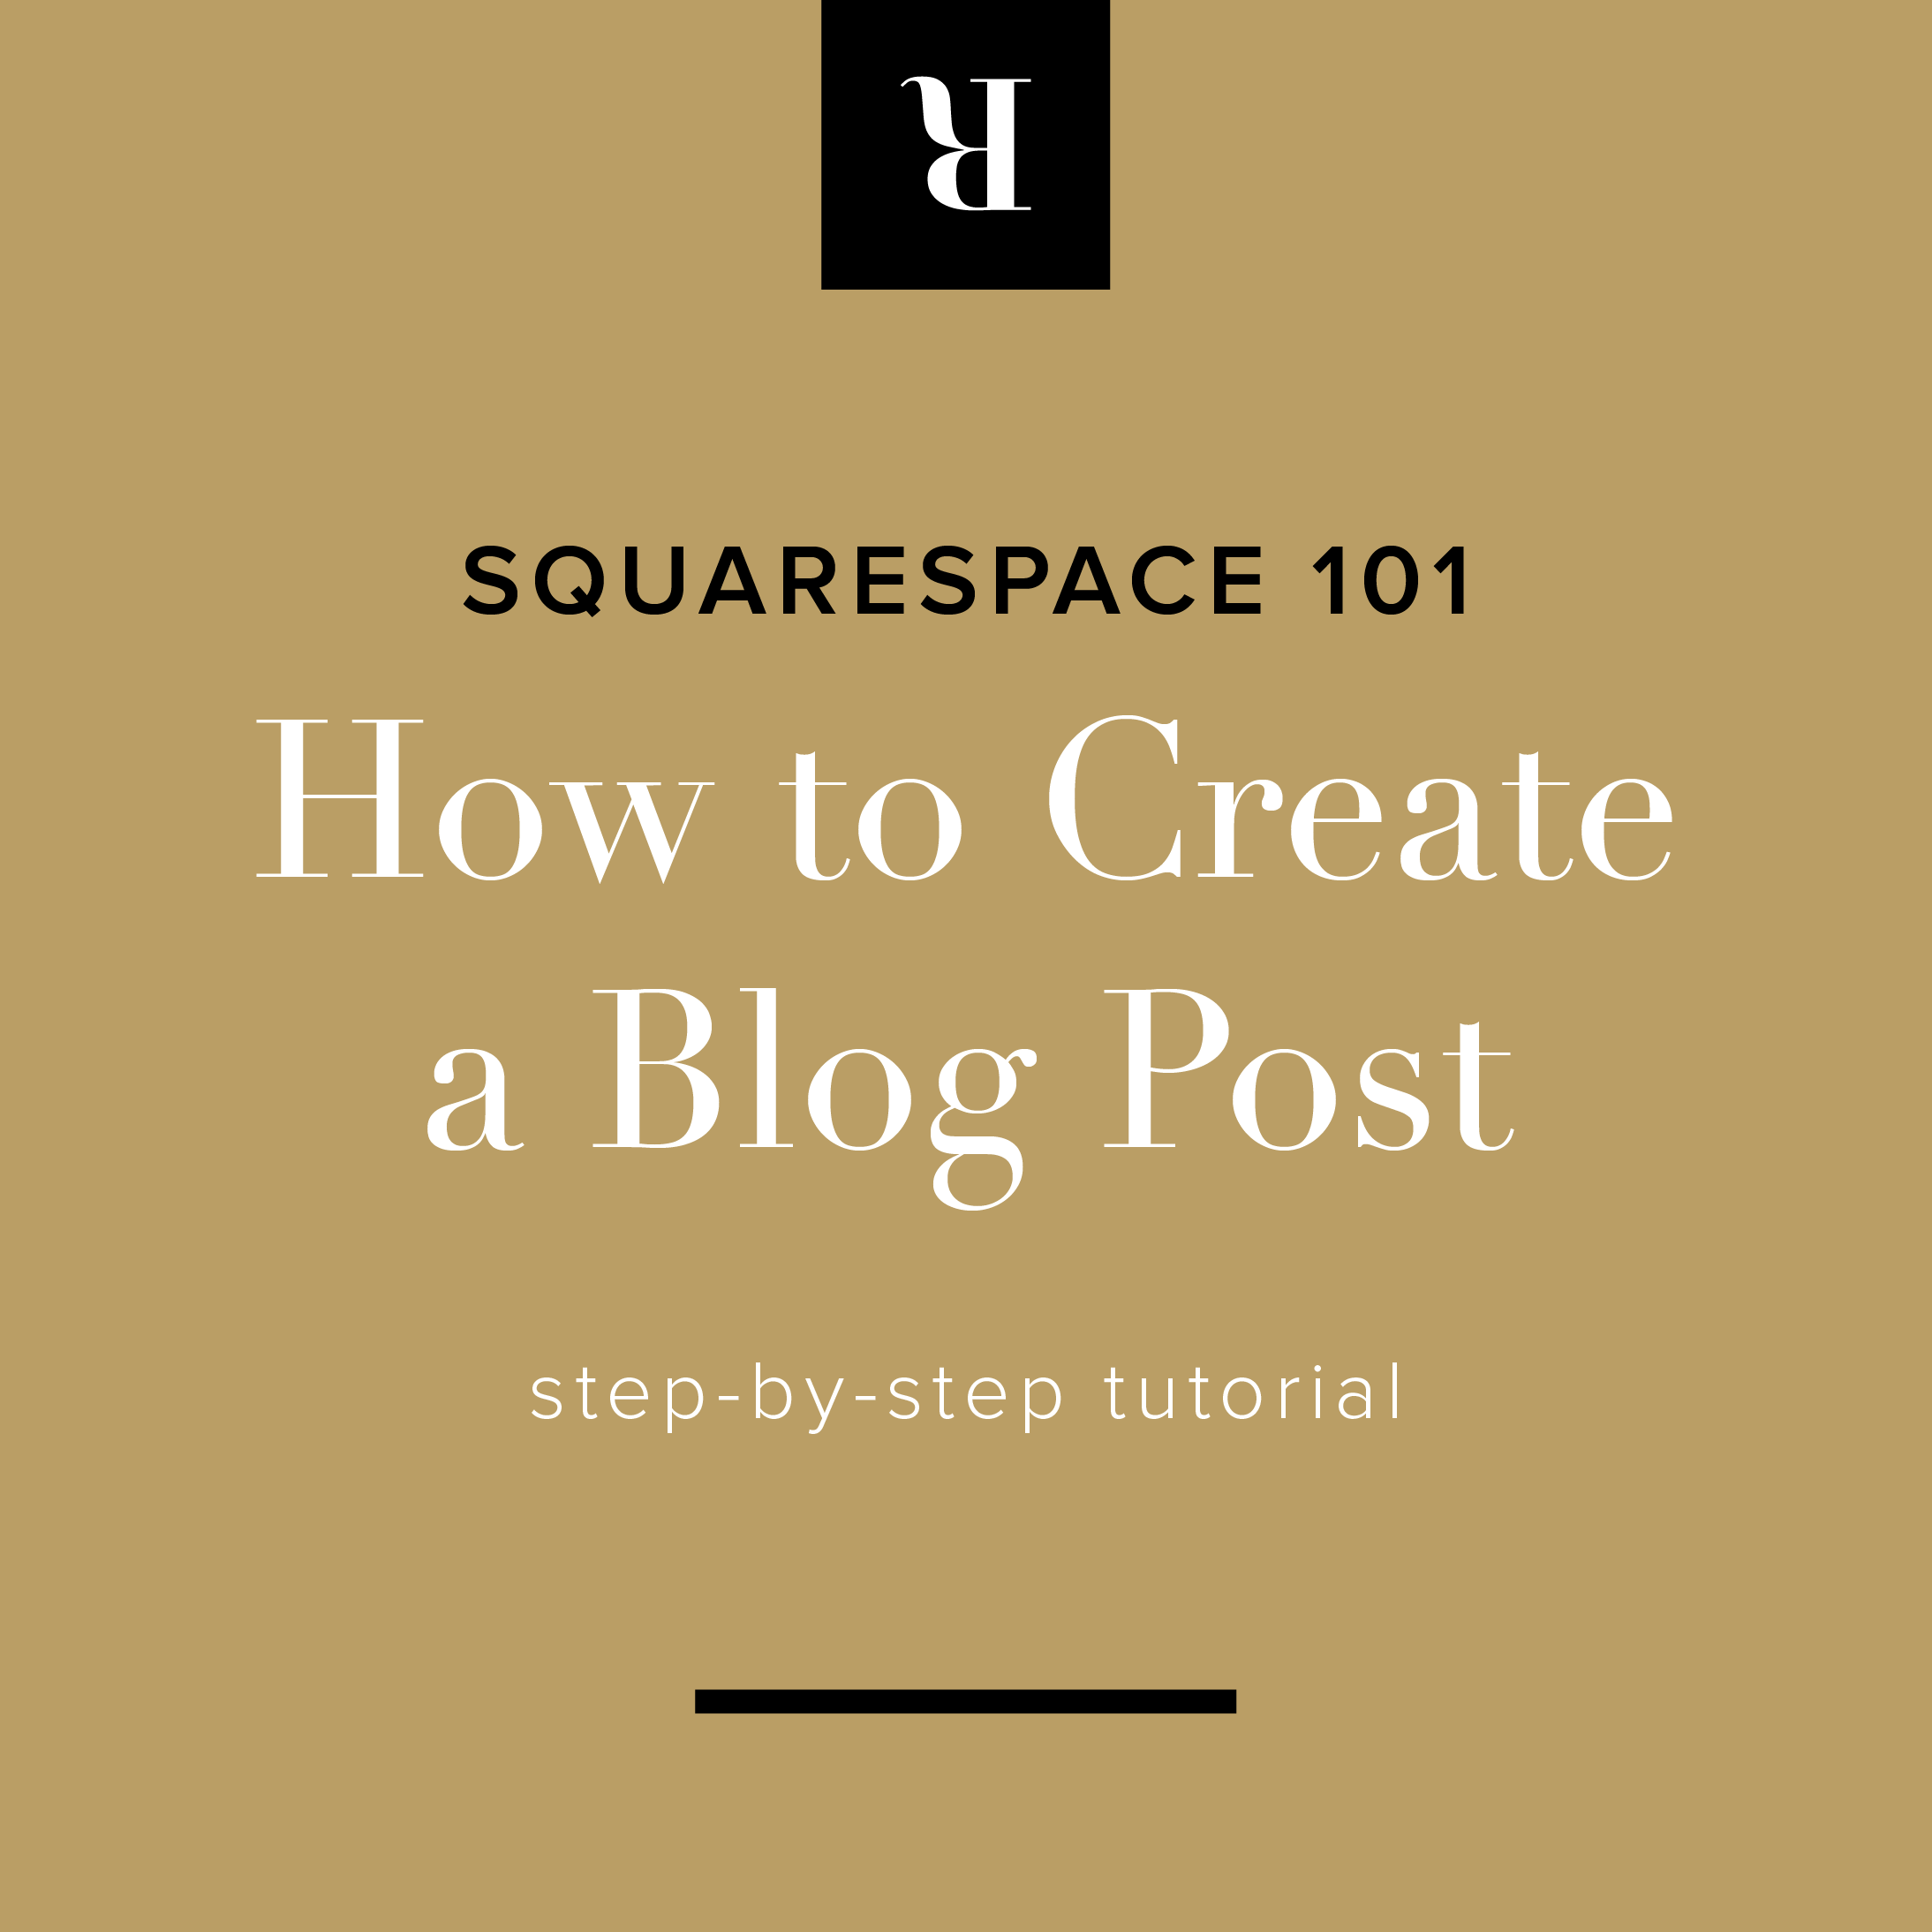 Squarespace 101: How to Create a Blog Post | Letterform Creataive